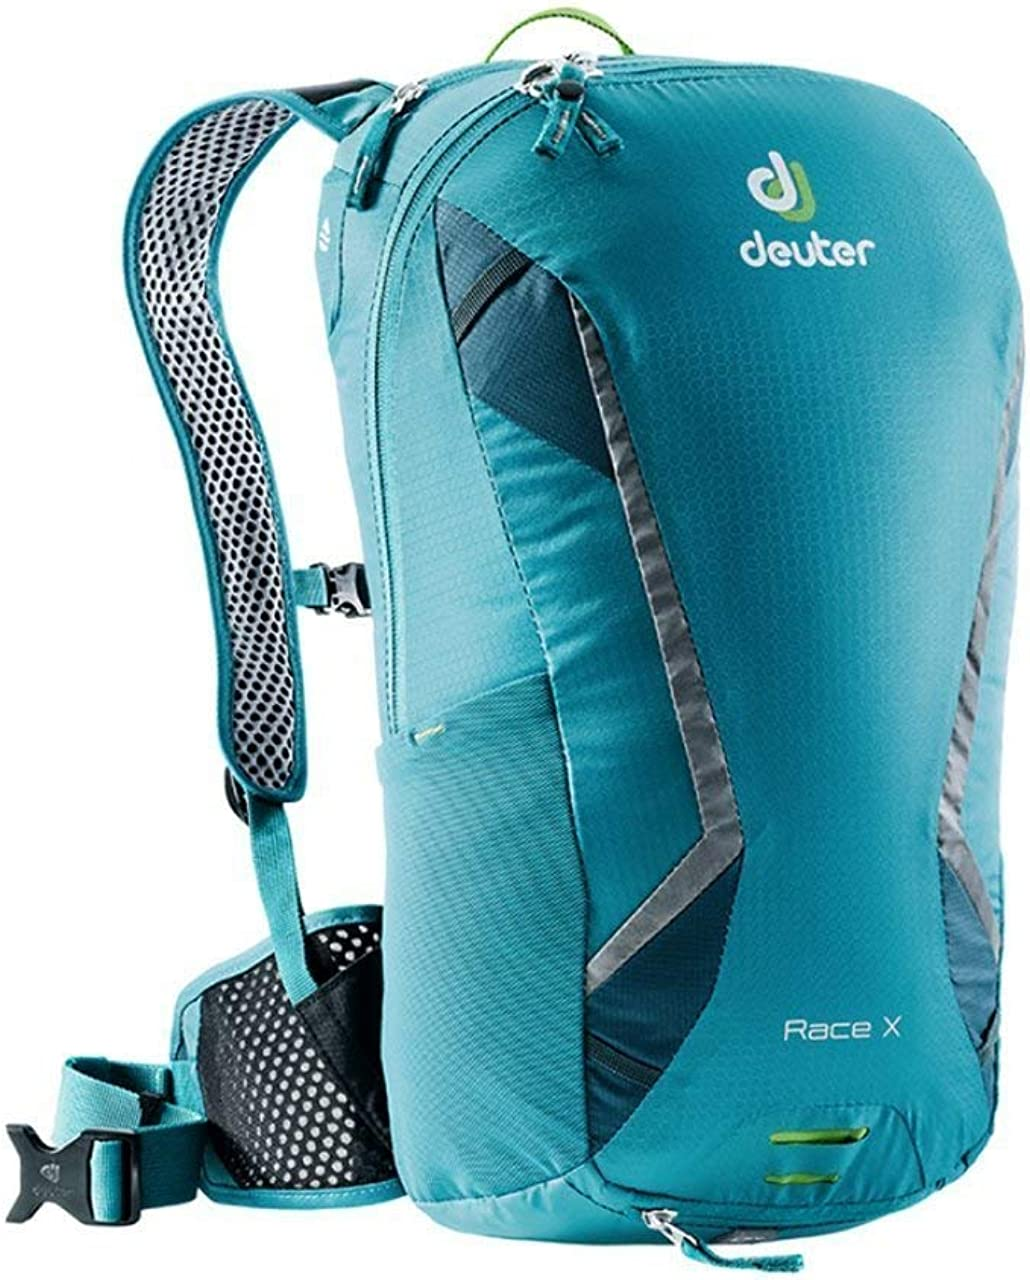 Deuter Race X Biking Backpack